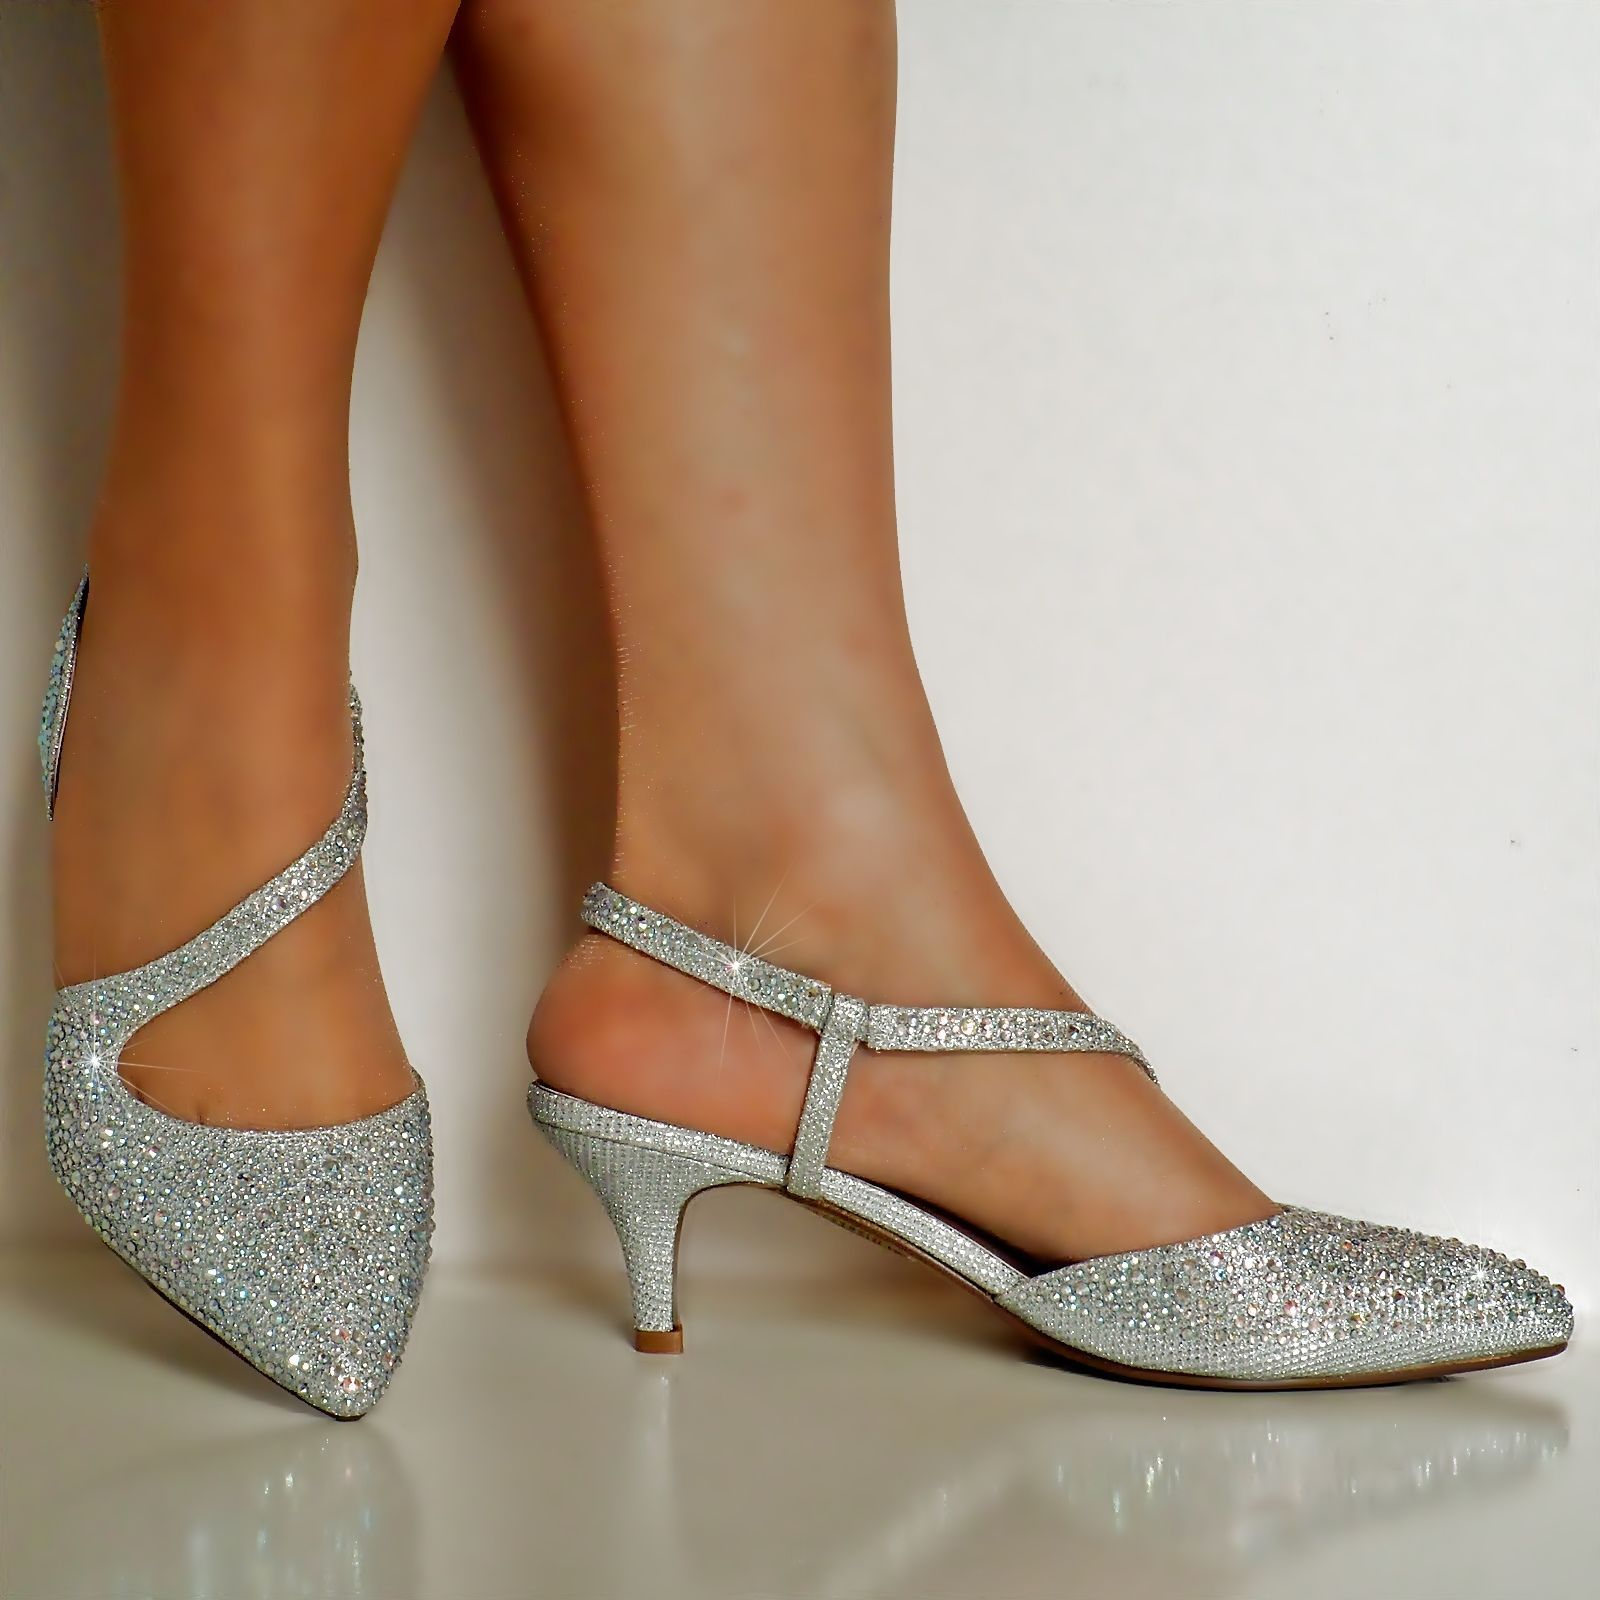 New Diamante Silver Gold Low Kitten Heel Prom Evening Bridal Shoes Sandals Ladies Evening Bridal Bridal Shoes Low Heel Silver Shoes Low Heel Kitten Heel Shoes